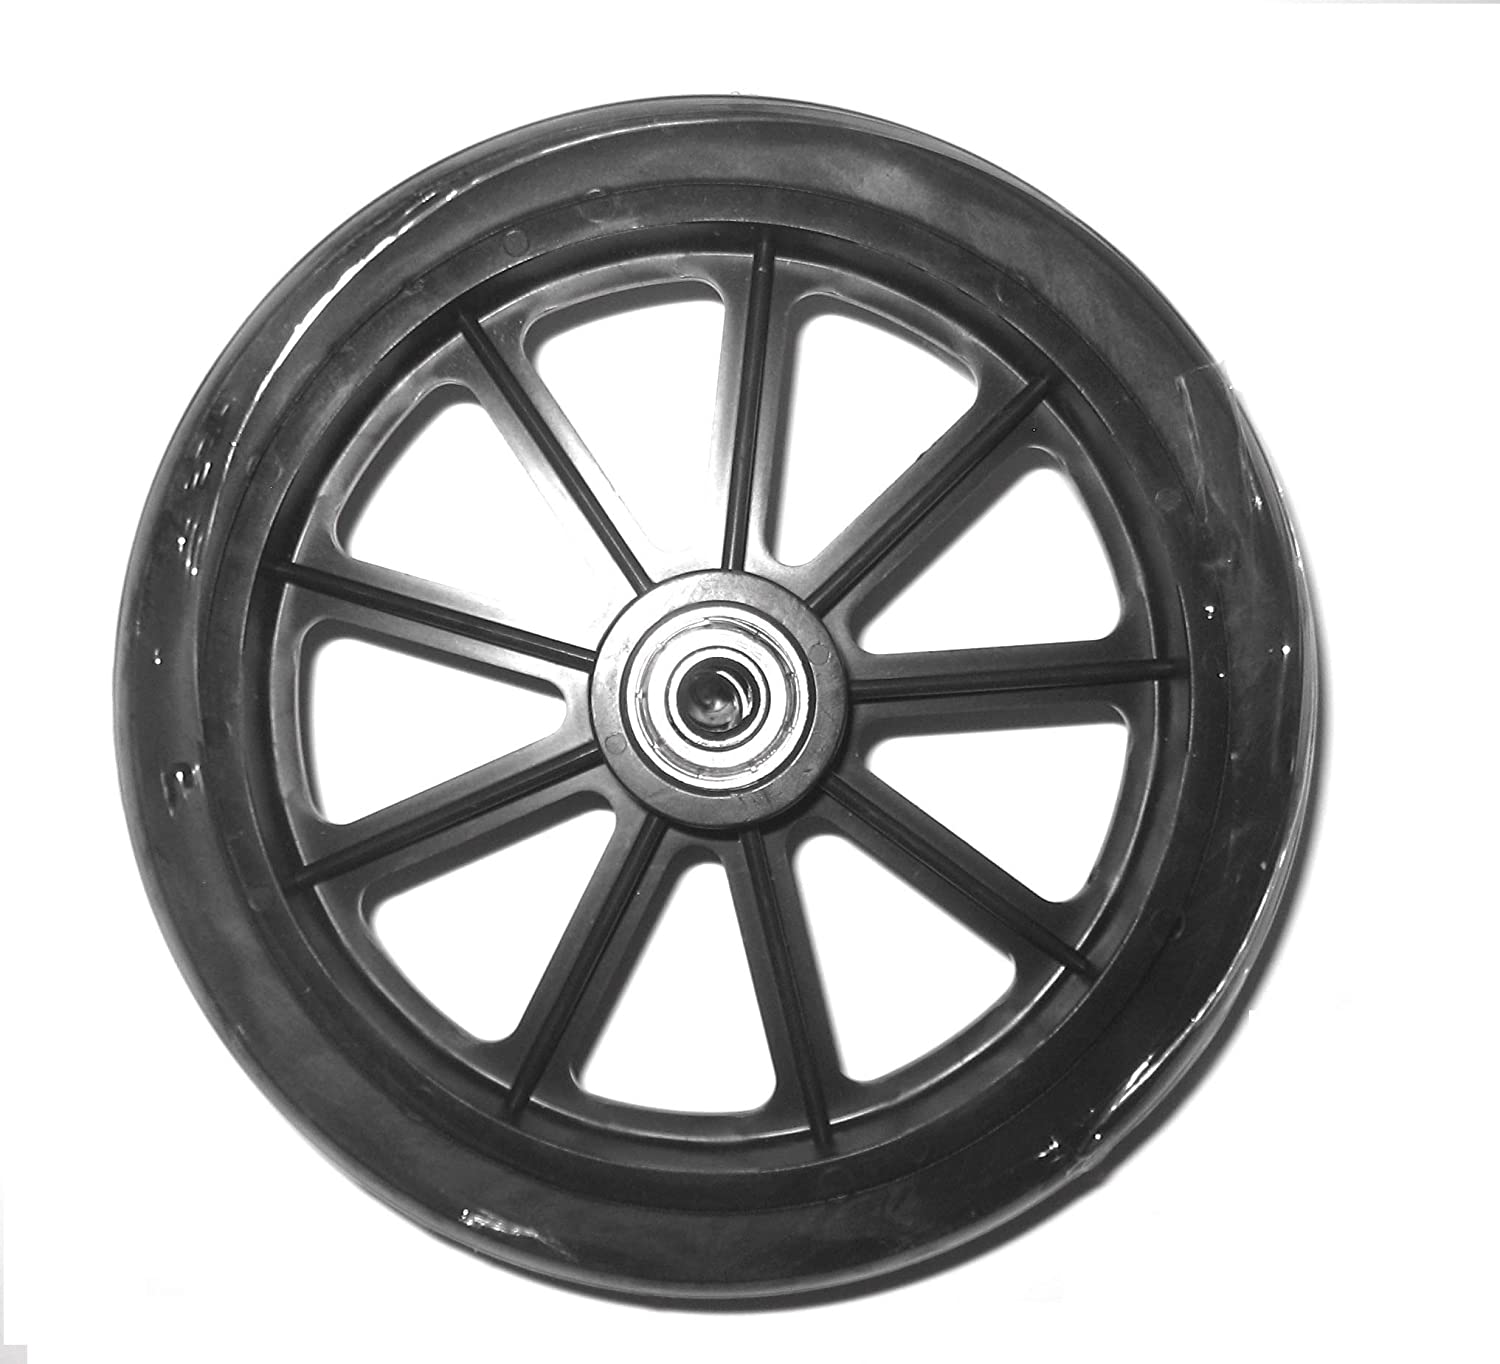 Roscoe Replacement Wheel 6 Inch with Super beauty product restock quality top Max 87% OFF Black Whe 9 - Bearing Spoke